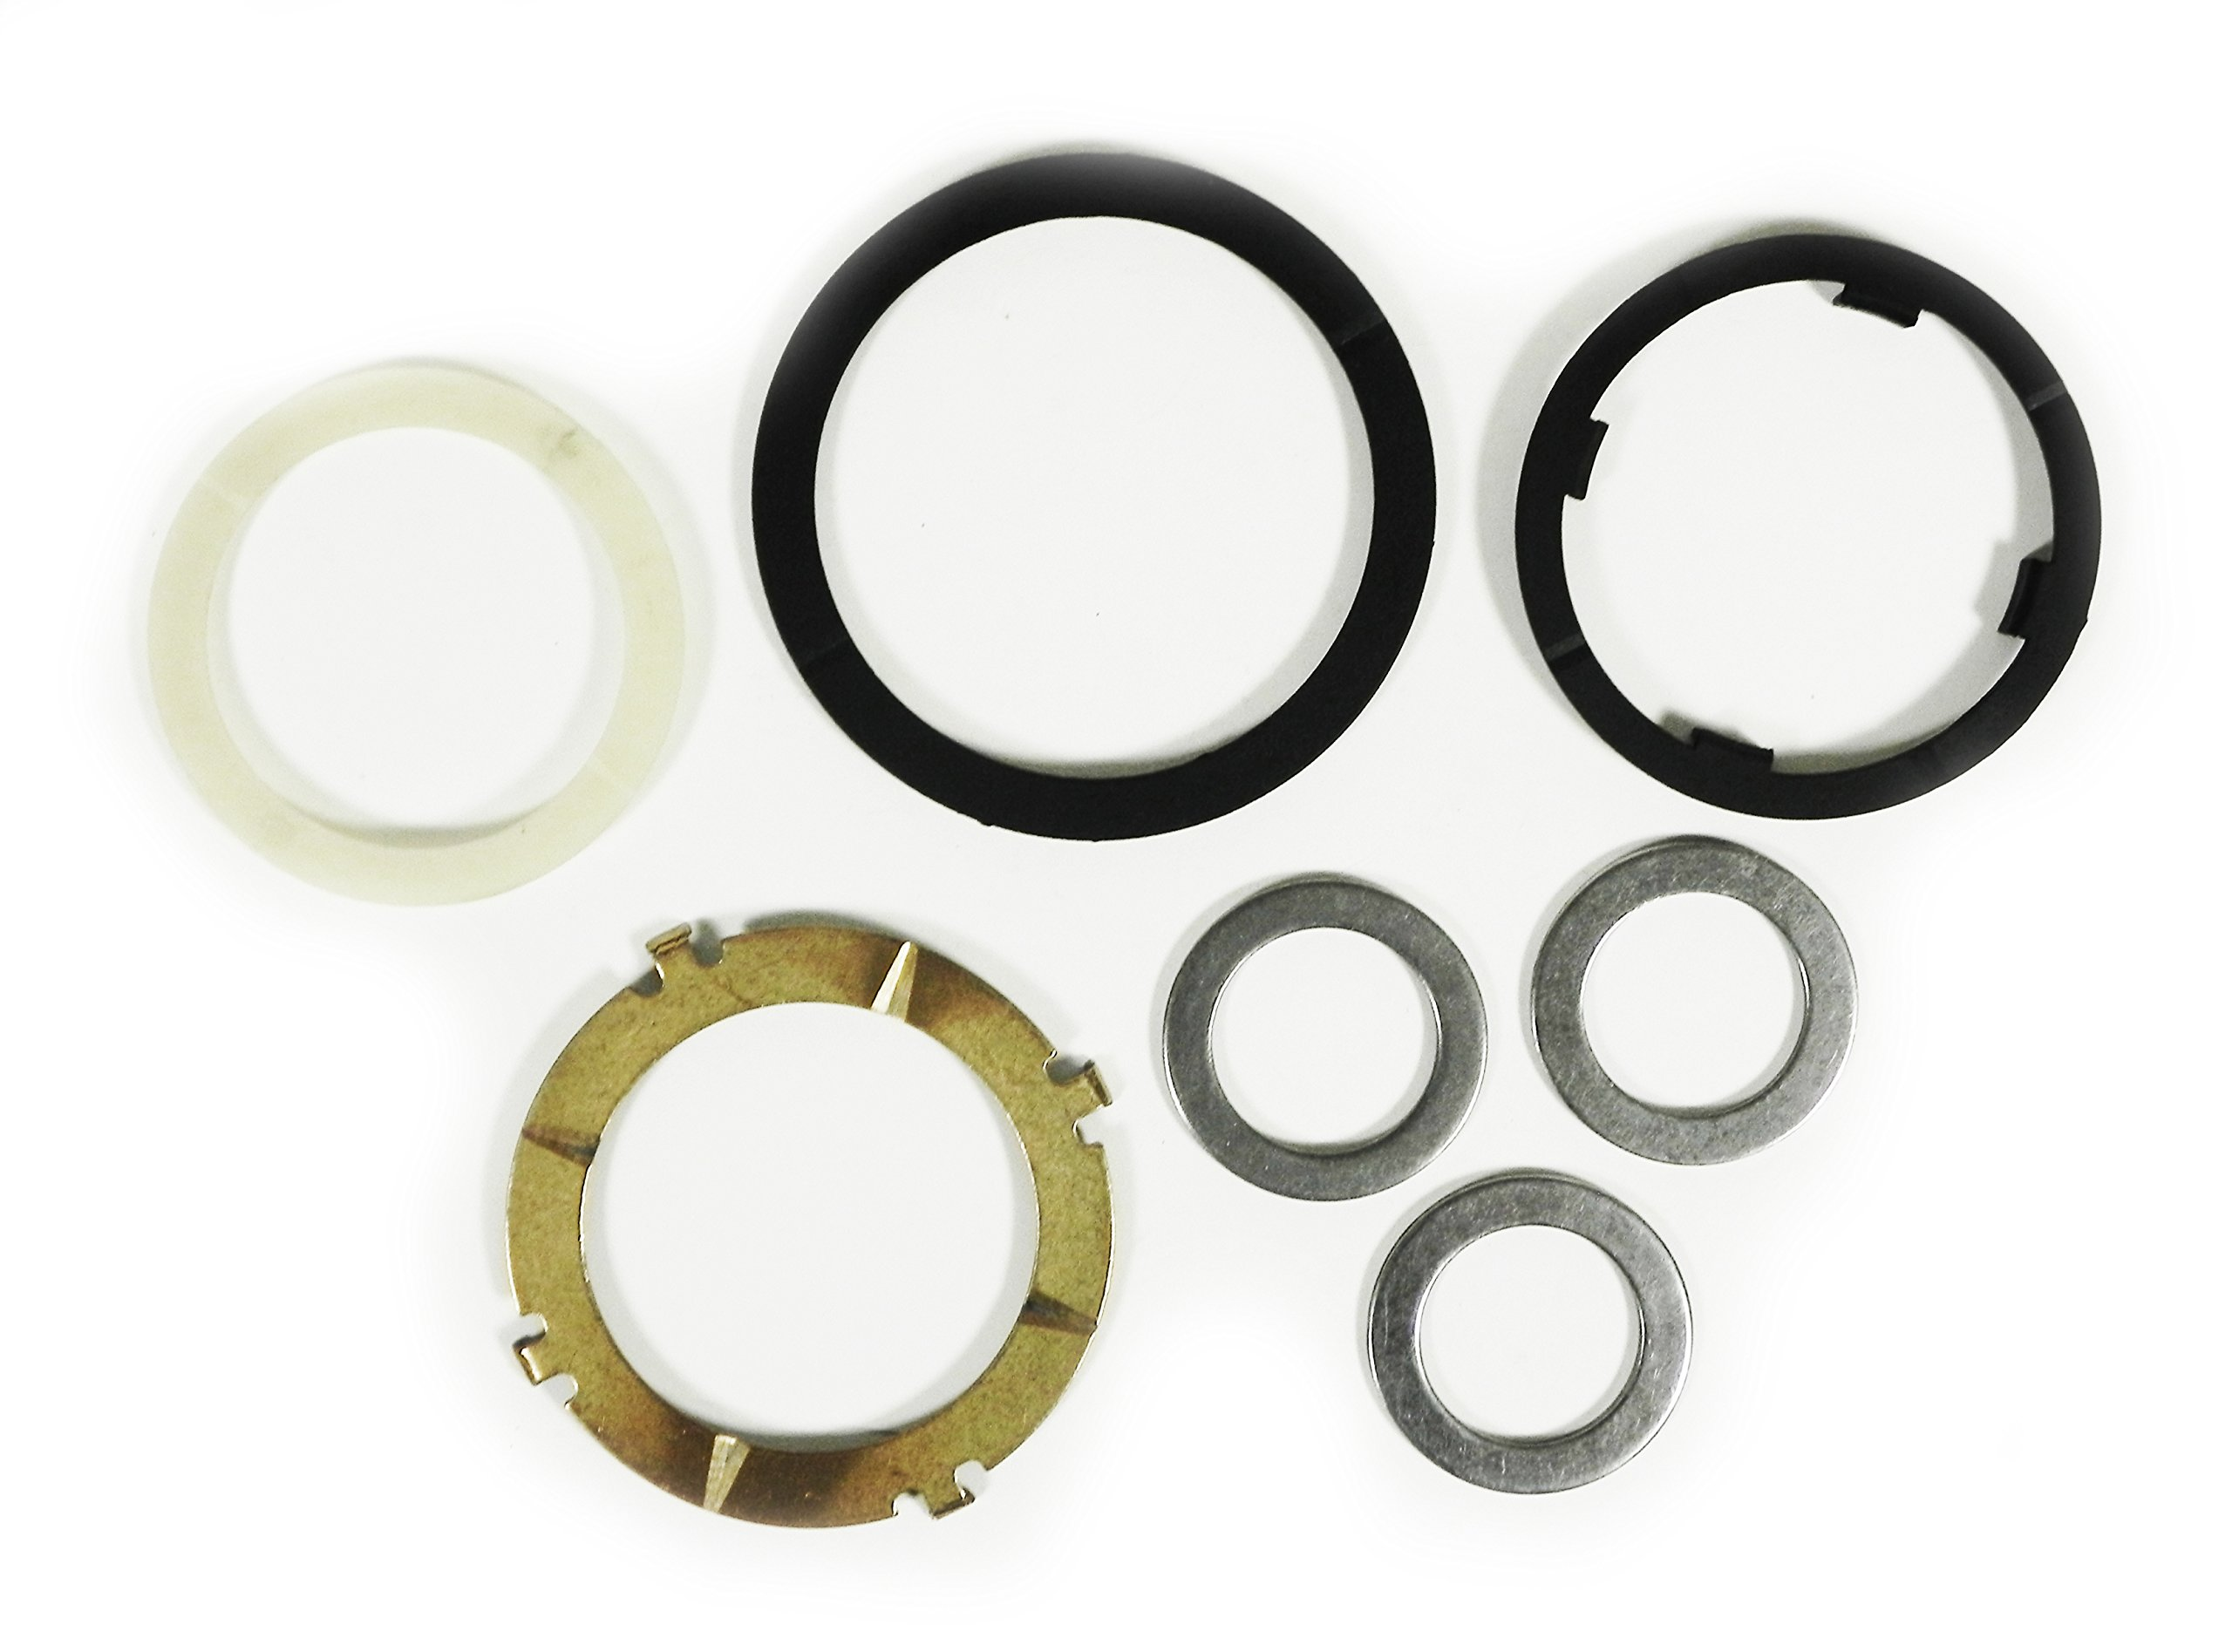 GM 4L60E HE 3-4 1997-03 AUTOMATIC TRANSMISSION REBUILD RAYBESTOS SUPER KIT (EXC. VET, CANYON, COLORADO)